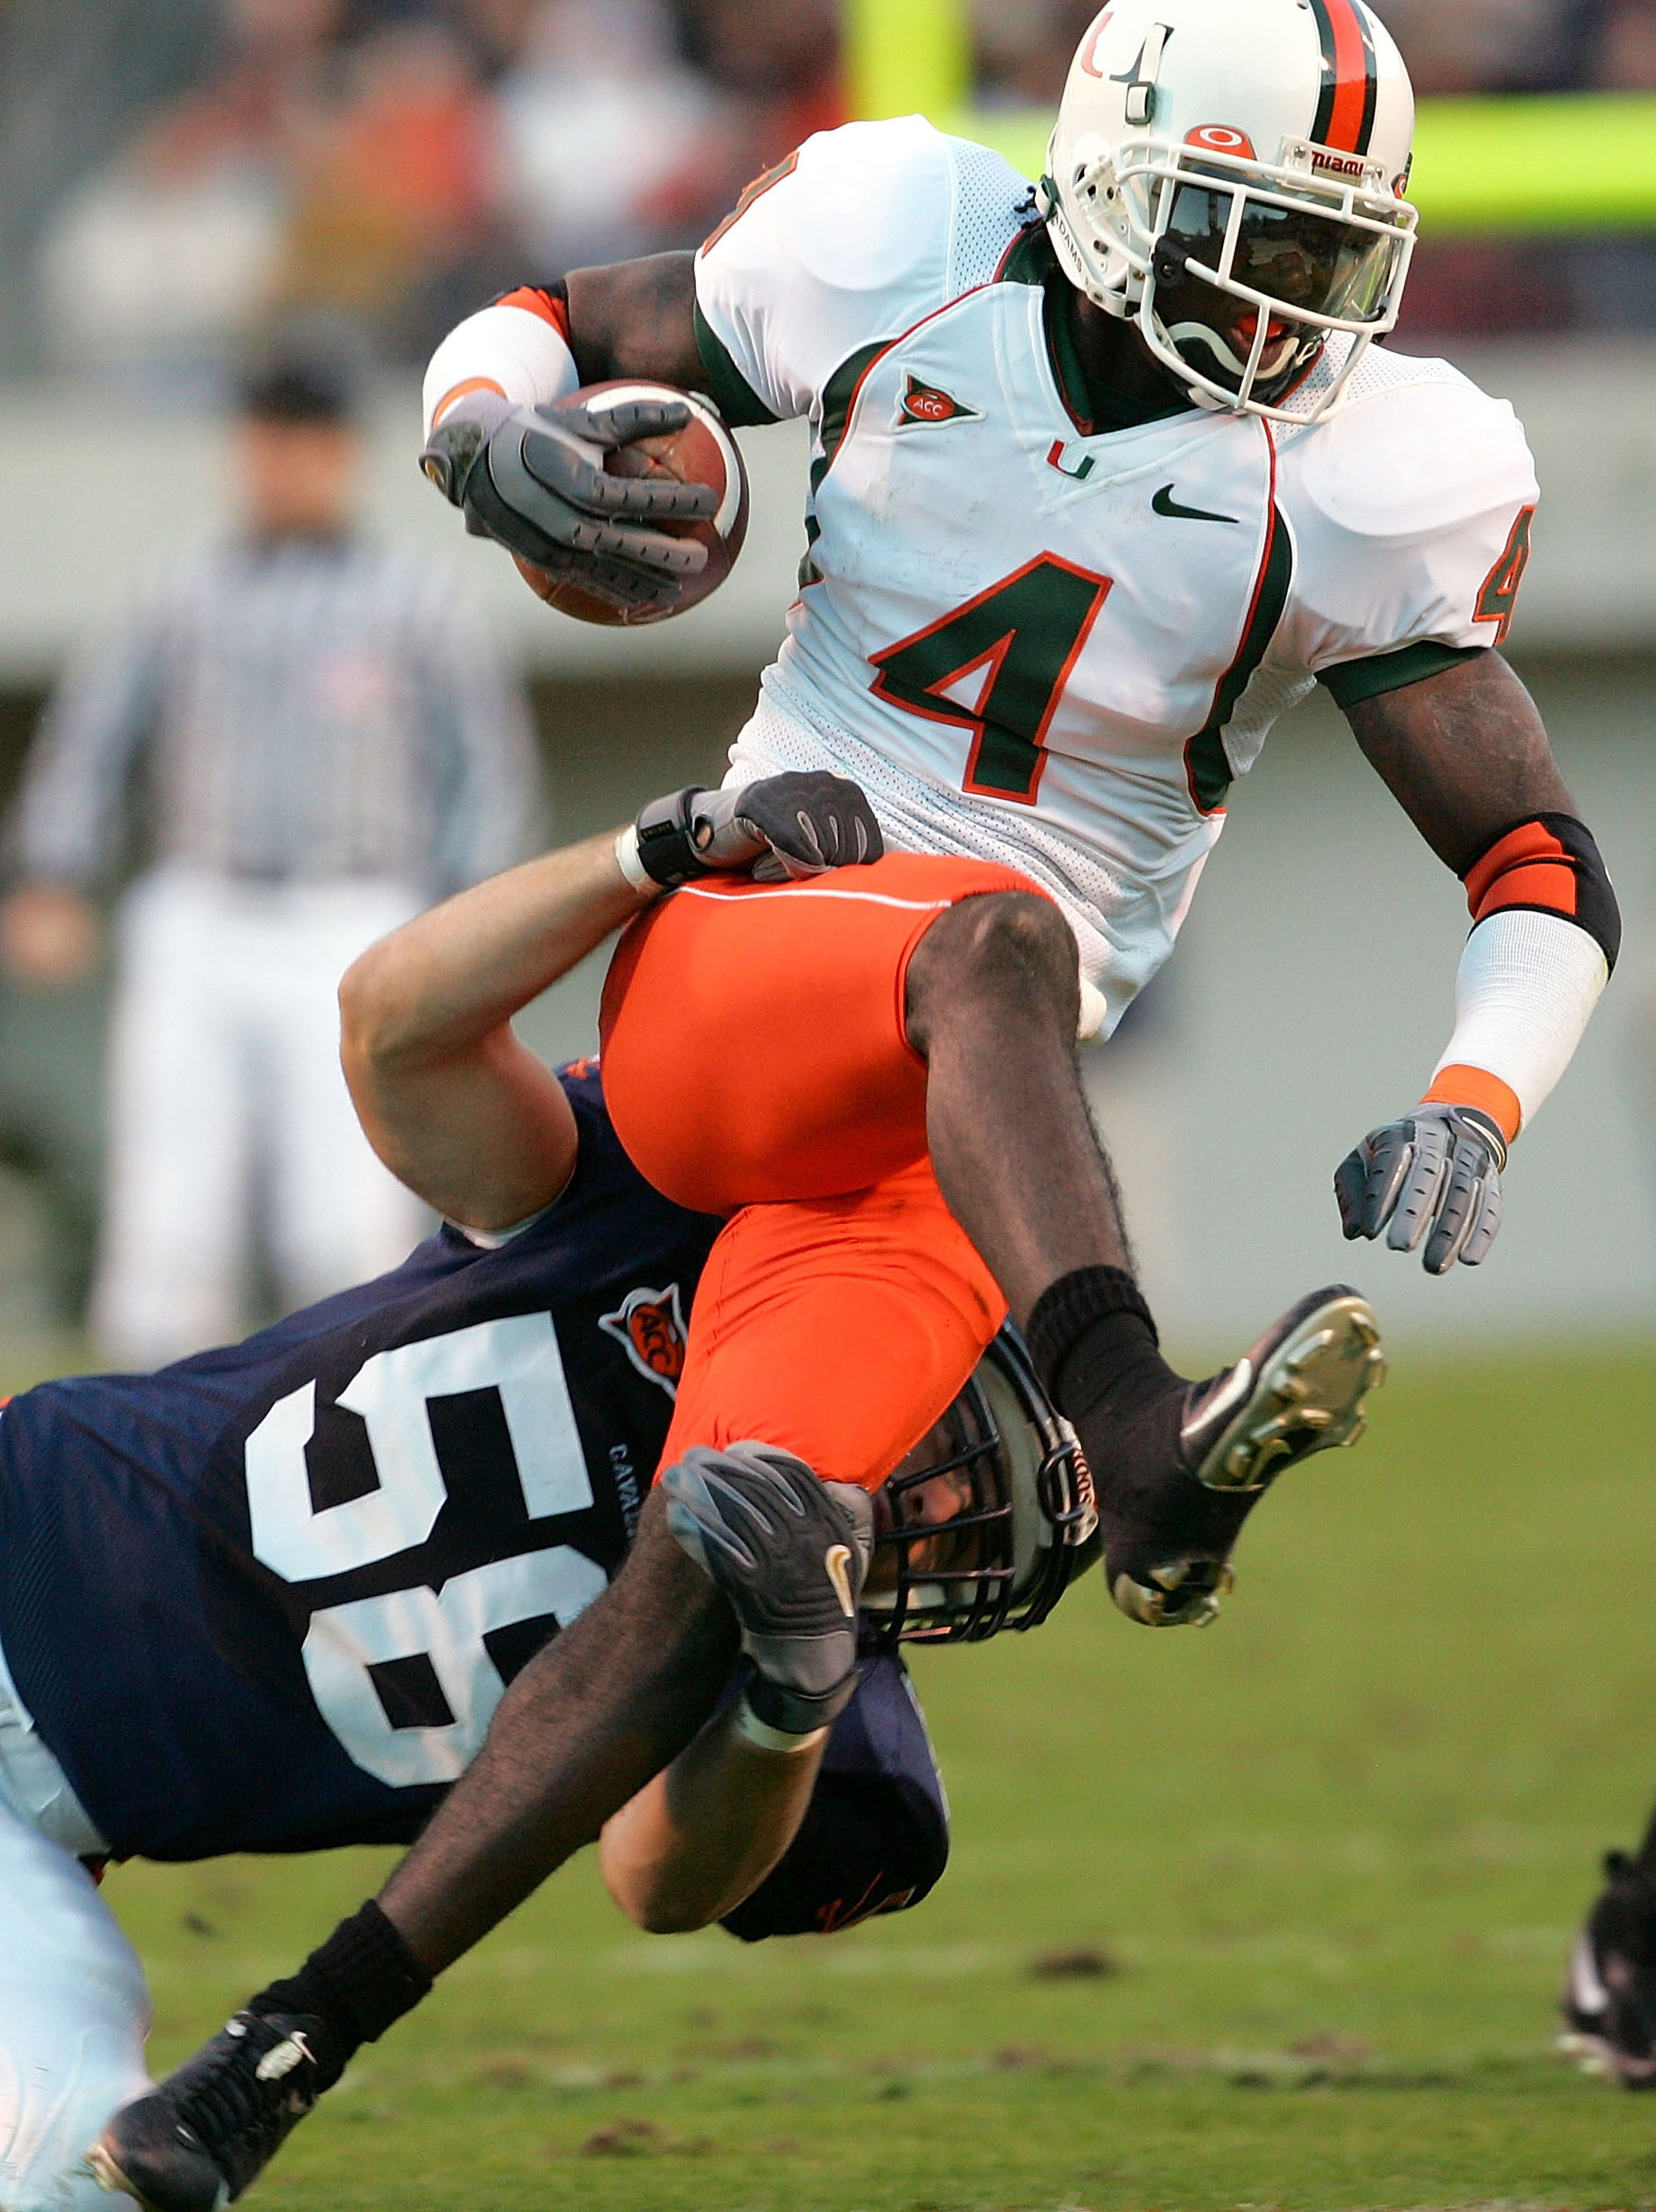 CHARLOTTESVILLE, VA - NOVEMBER 13:  Devin Hester #4 of the Miami Hurricanes carries the ball on a kickoff return as Jon Thompson #58 of the Virginia Cavaliers defends during the first half of the game on November 13, 2004 at David A. Harrison III Field at